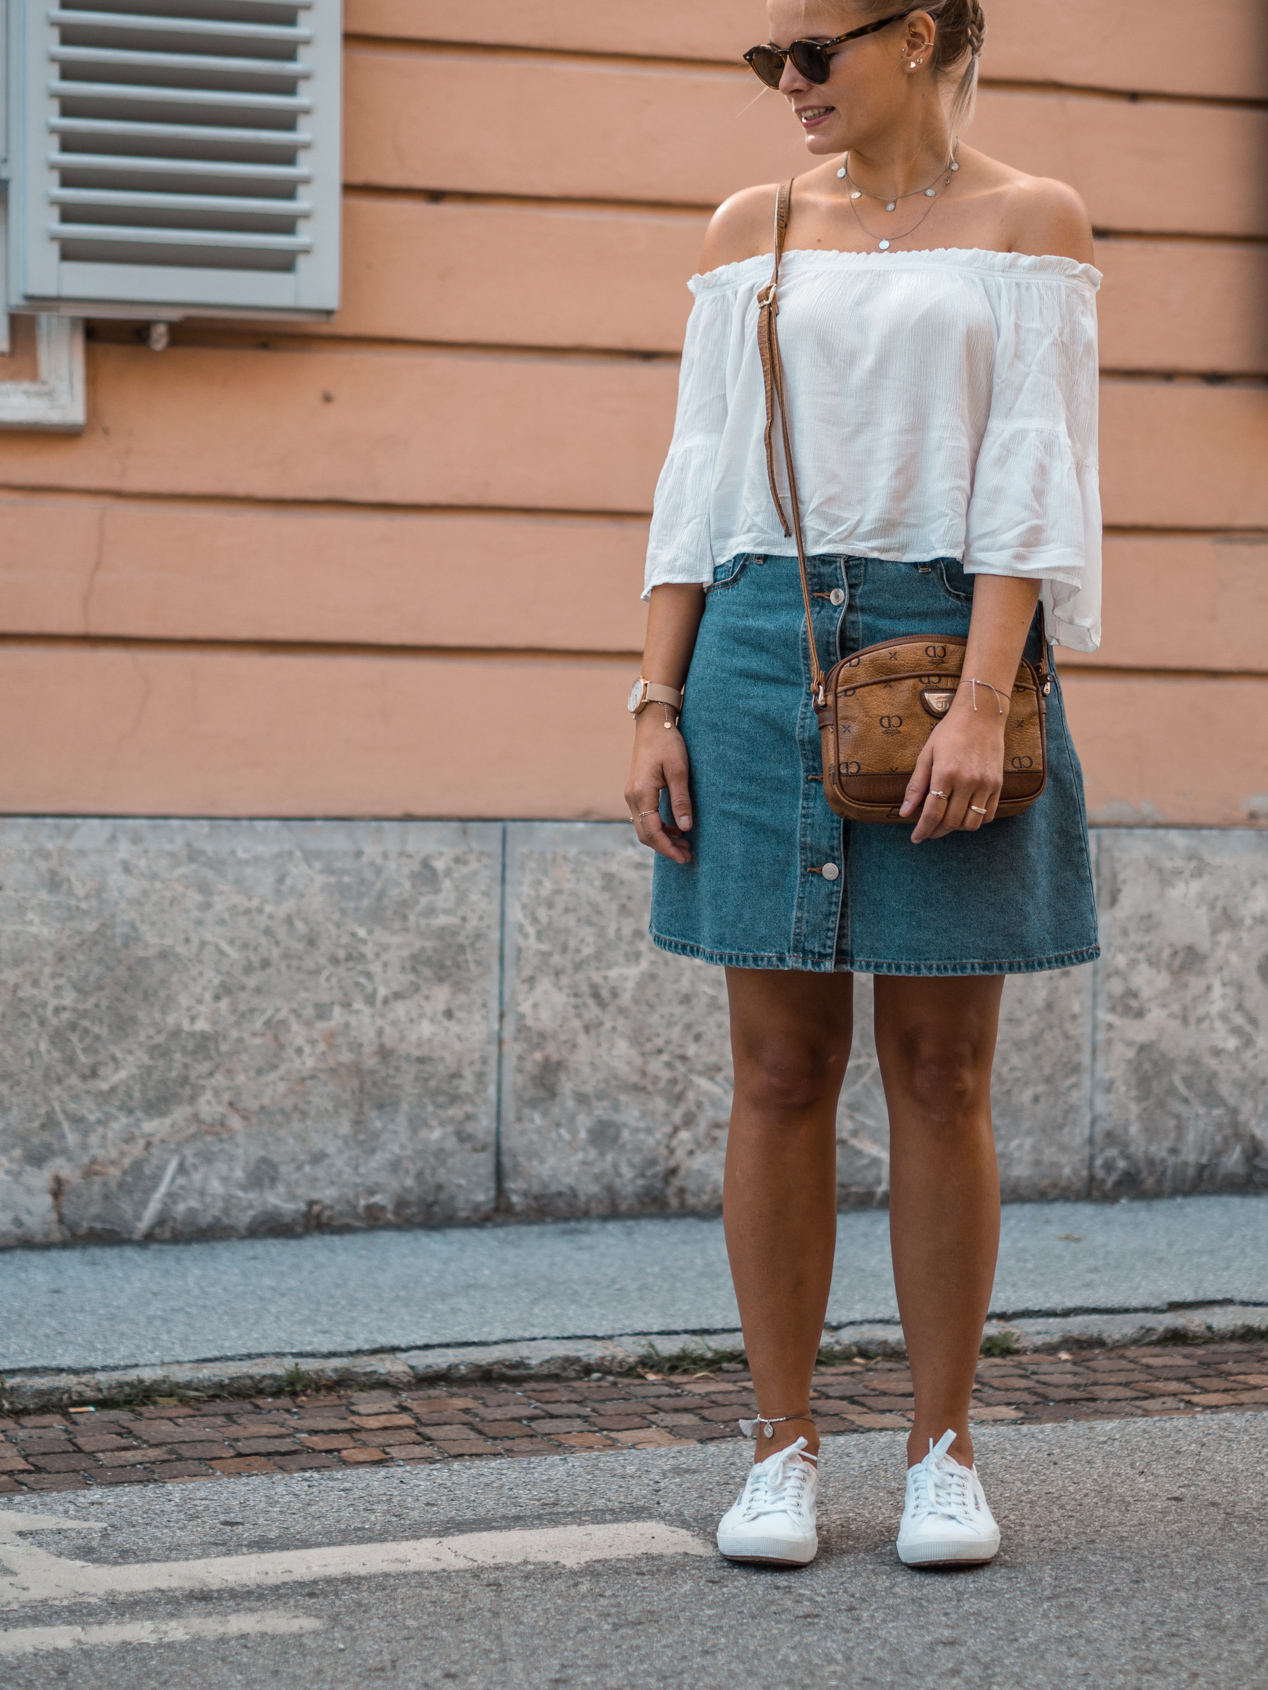 Jeansrock kombinieren, Off Shoulder Bluse kombinieren, Superga kombinieren, weiße Sneaker kombinieren, Sommerbasics, Basics, Sommerlook, Outfit, Fashion, Sommeroutfit